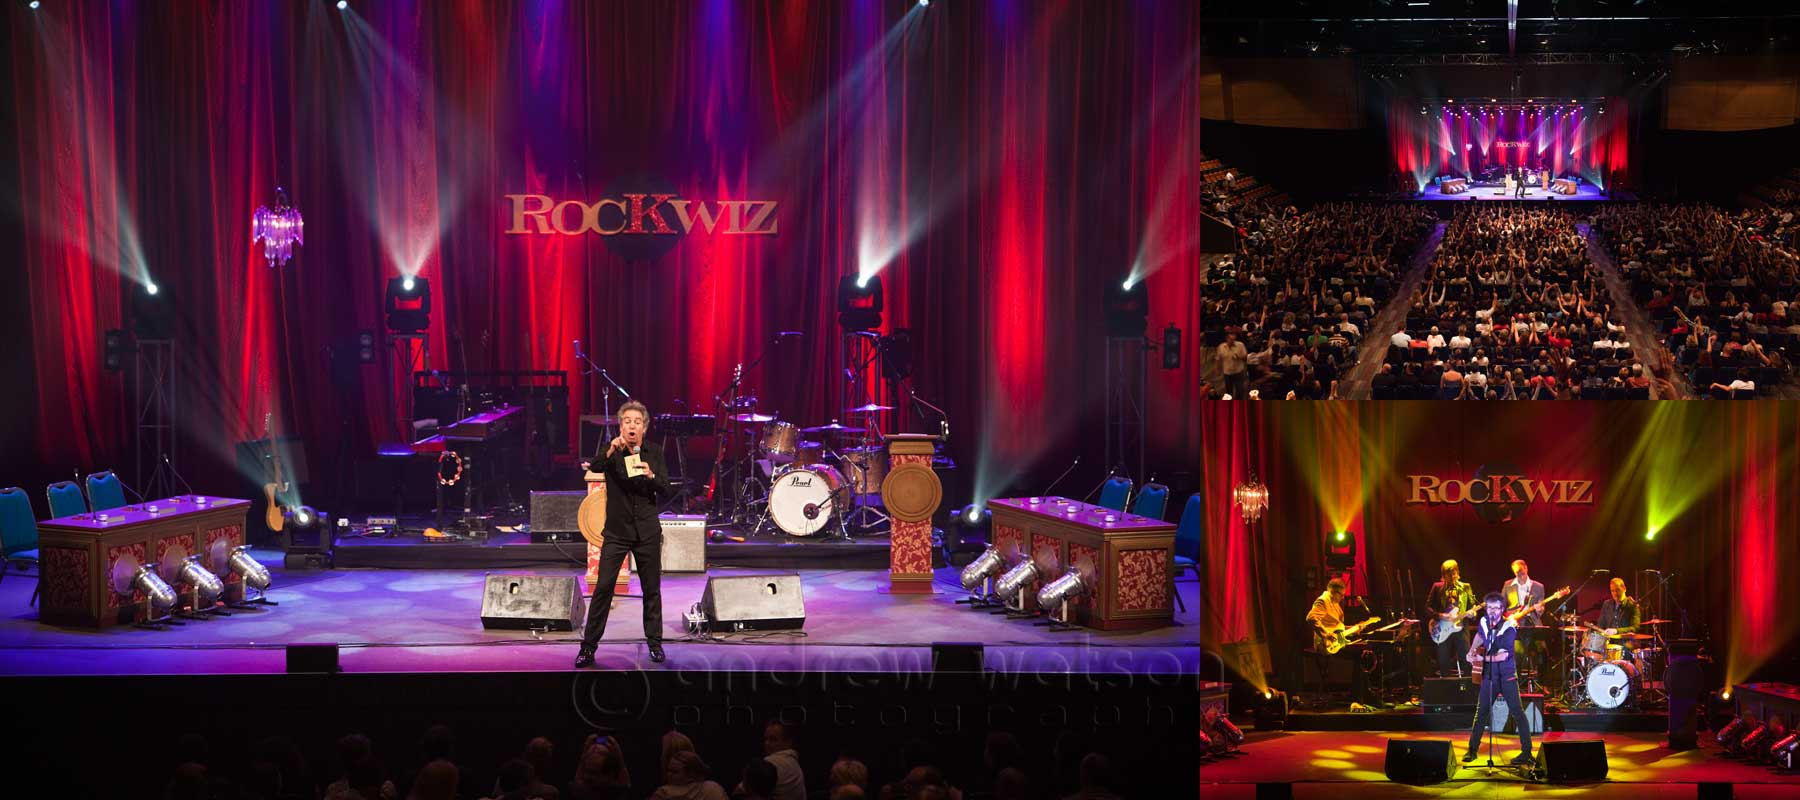 Events Photography - Images captured at RockWiz performance, Cairns Convention Centre